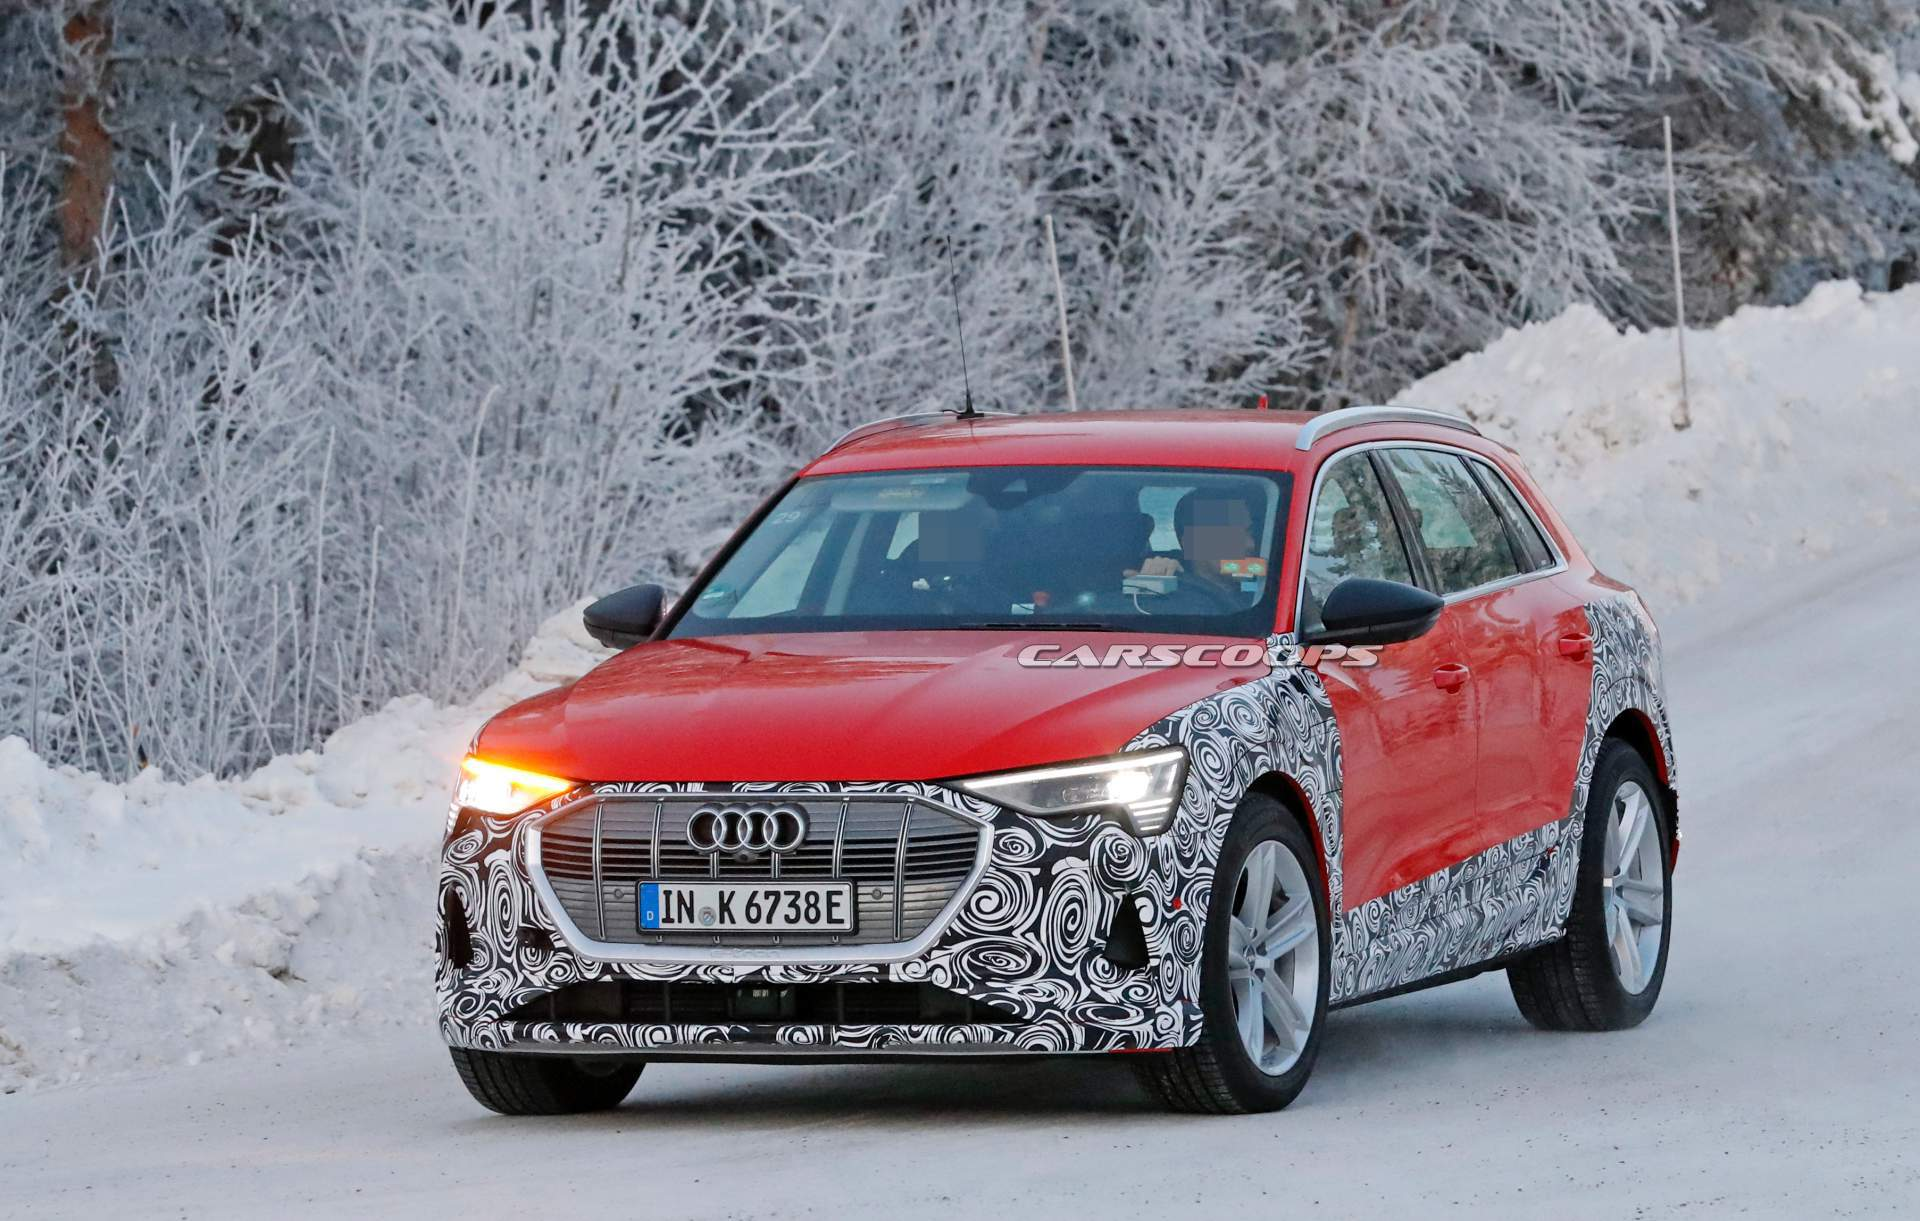 Car spotters have managed to acquire photos of a mysterious new Audi e-tron test mule as it rolled along wintery roads of northern Europe